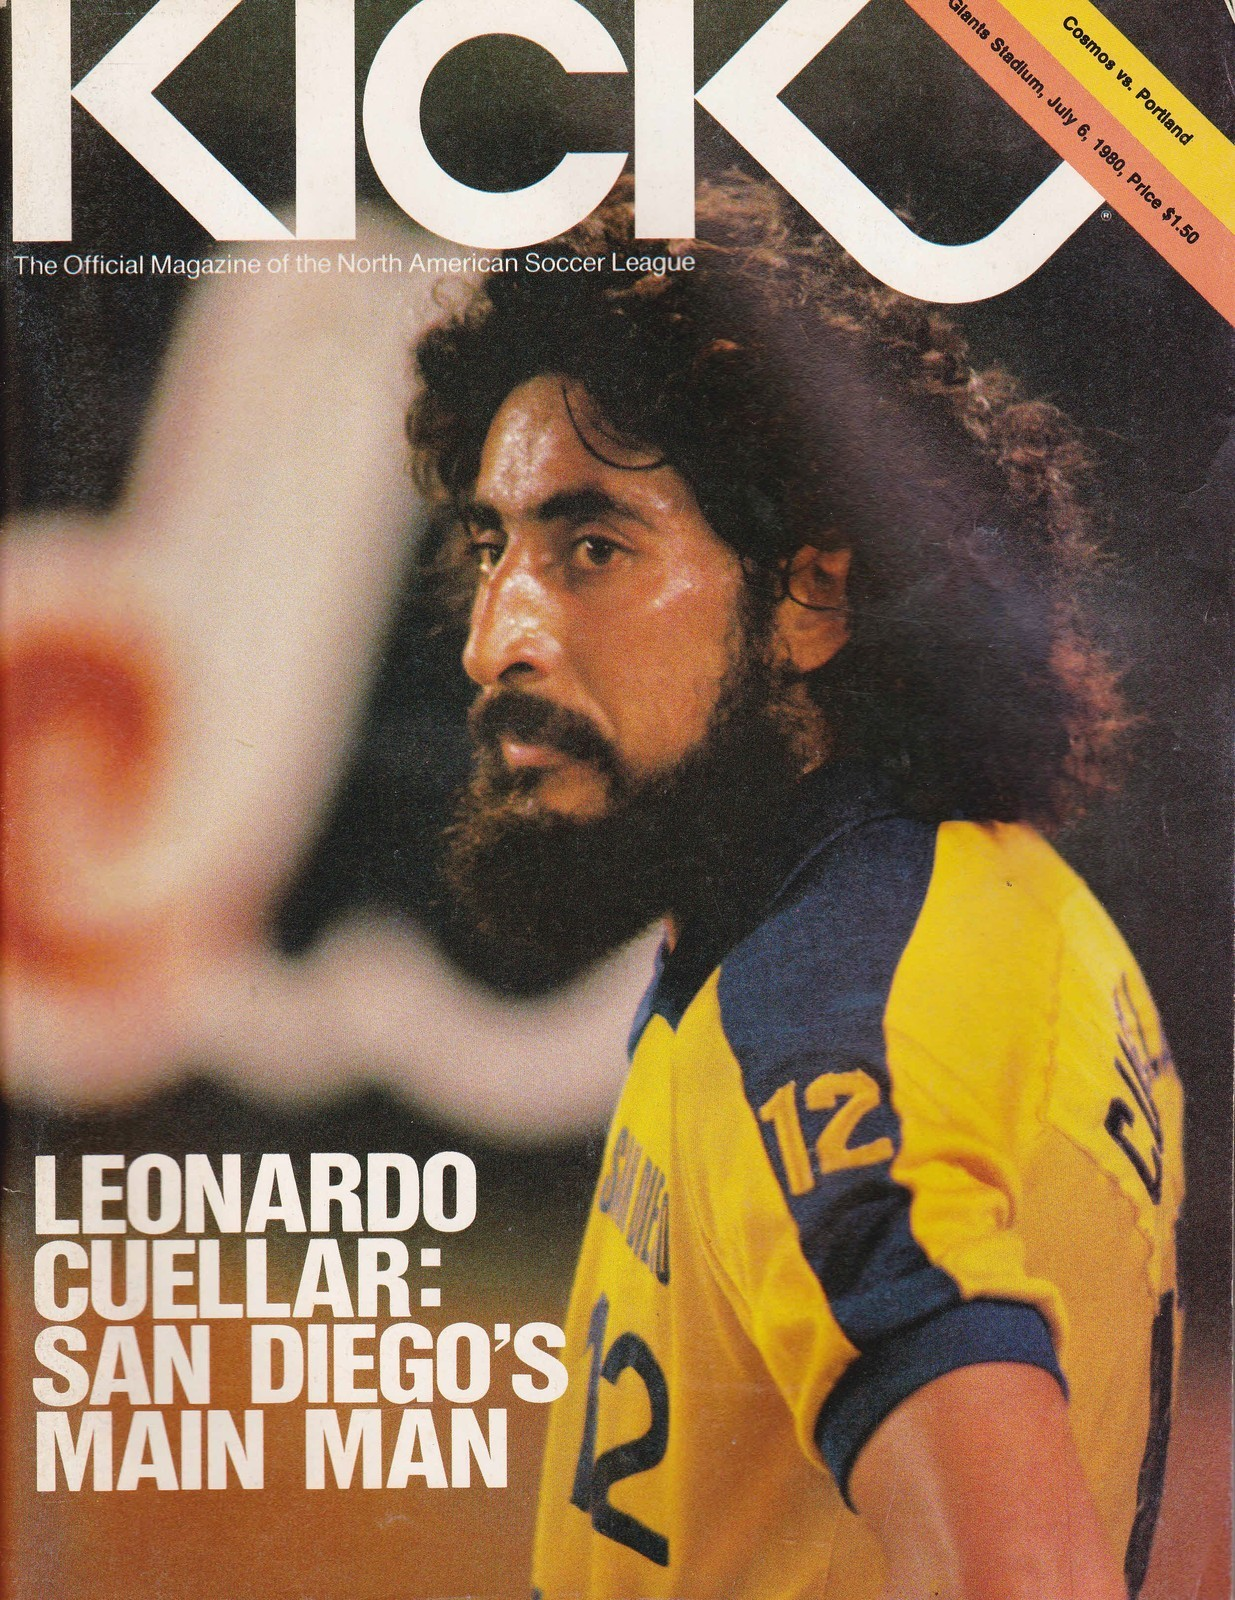 Mexican Leo Cuellar pictured in 1980, a star for the San Diego Sockers in the NASL. Now a dual national of Mexico and the United States, Cuellar is currently the coach of the Mexican women's national team, and in issue one of XI talks to Jeff Kassouf about the future of women's soccer in his native country and his recruitment of Mexican-Americans to play for the team.